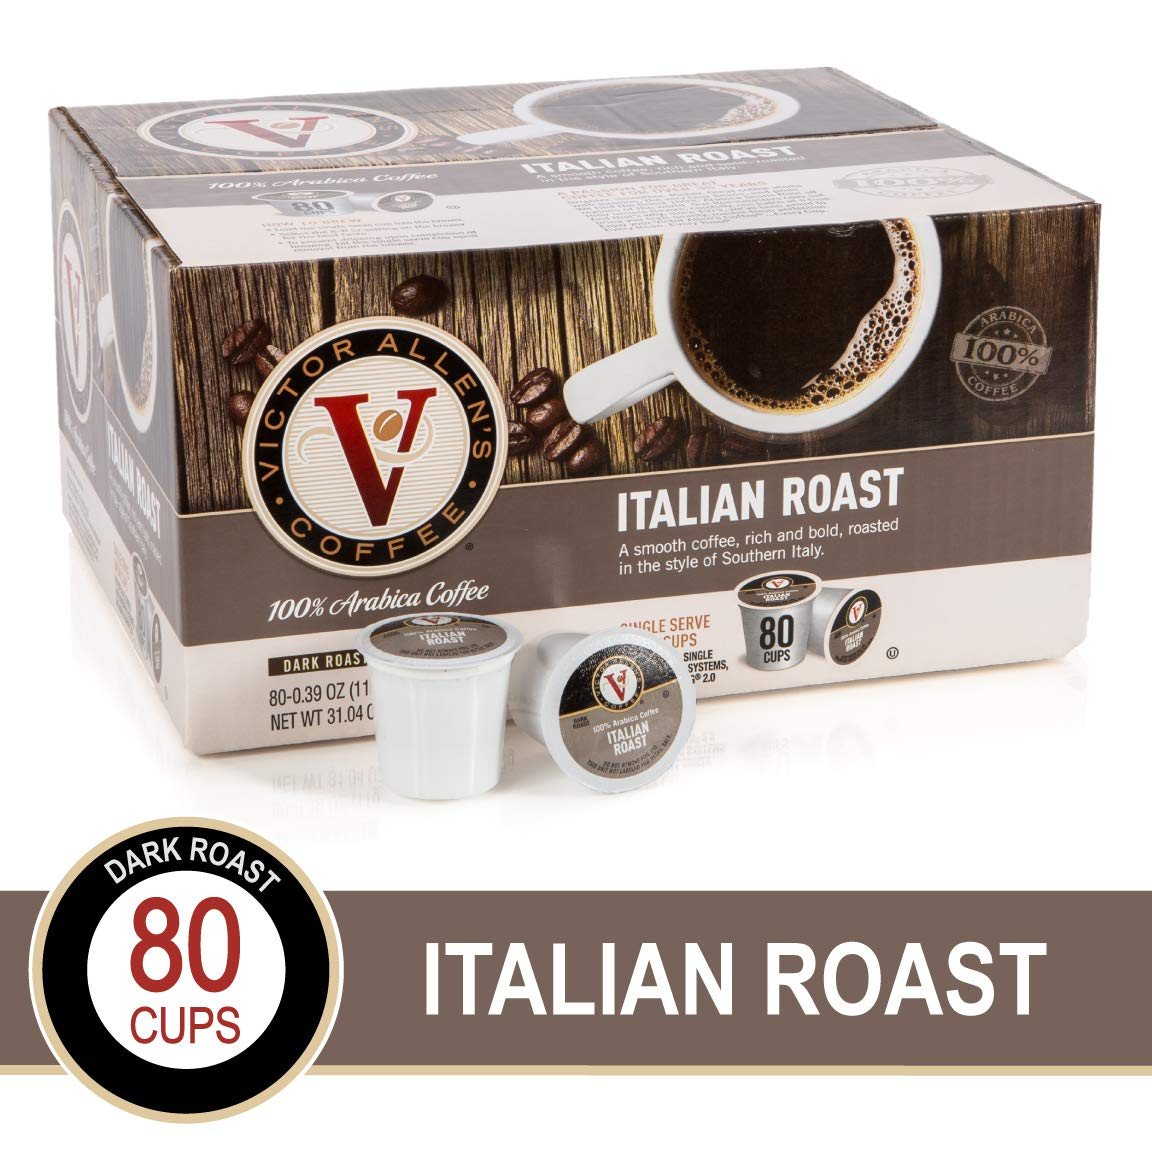 Italian Roast for K-Cup Keurig 2.0 Brewers, 80 Count, Victor Allen's Coffee Dark Roast Single Serve Coffee Pods by Victor Allen